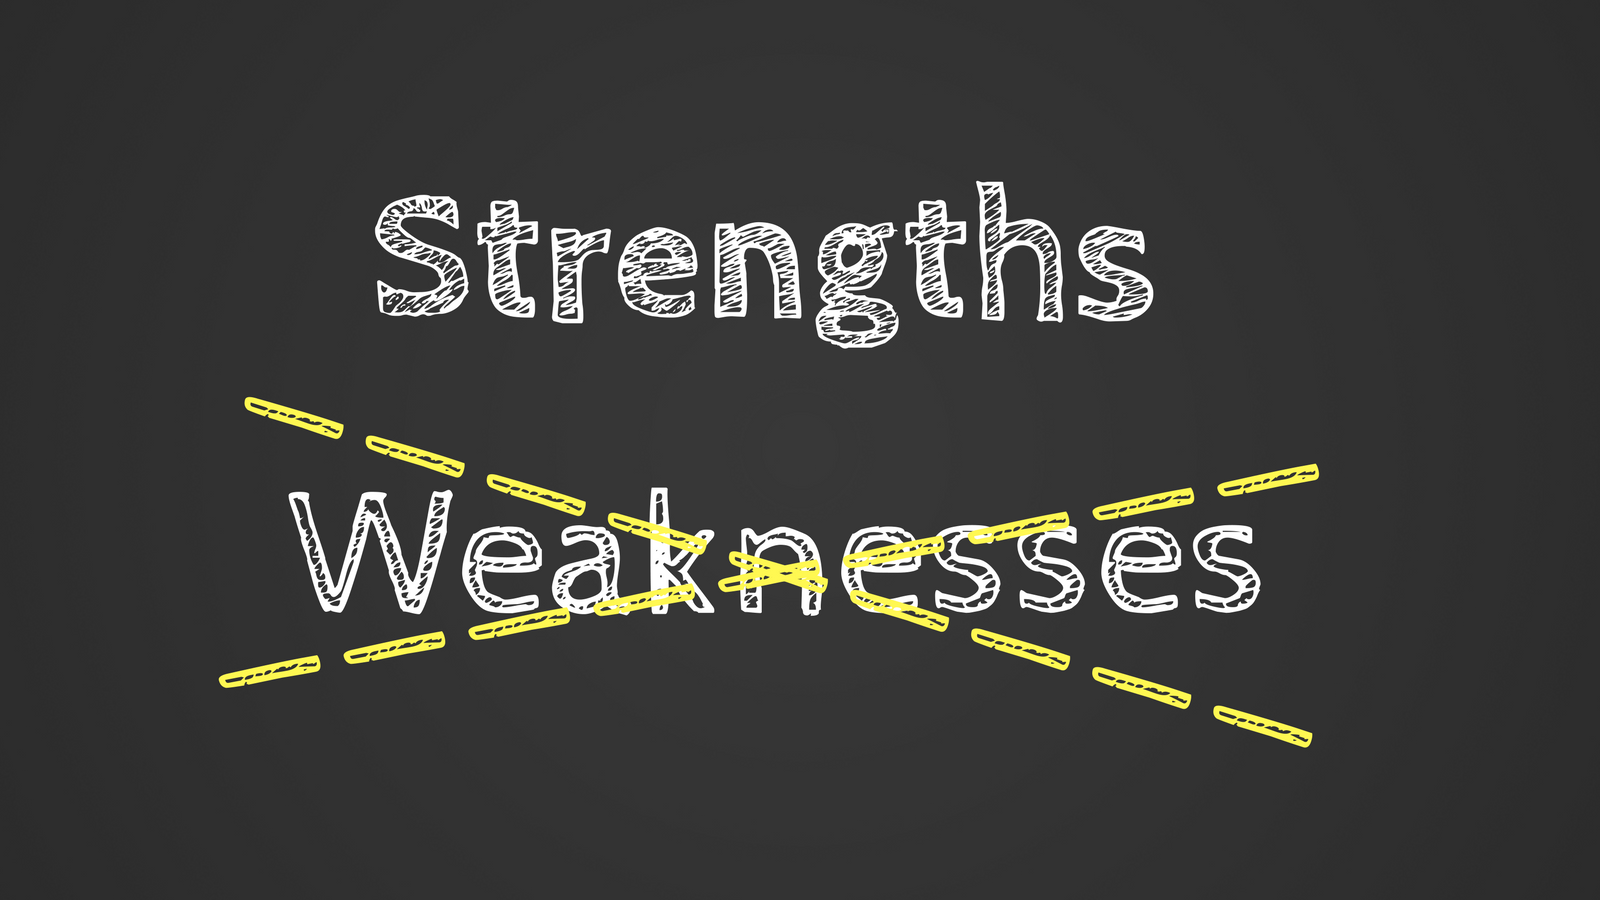 Mentors Turn Your Weaknesses To Your Strengths - By Naveen Lakkur